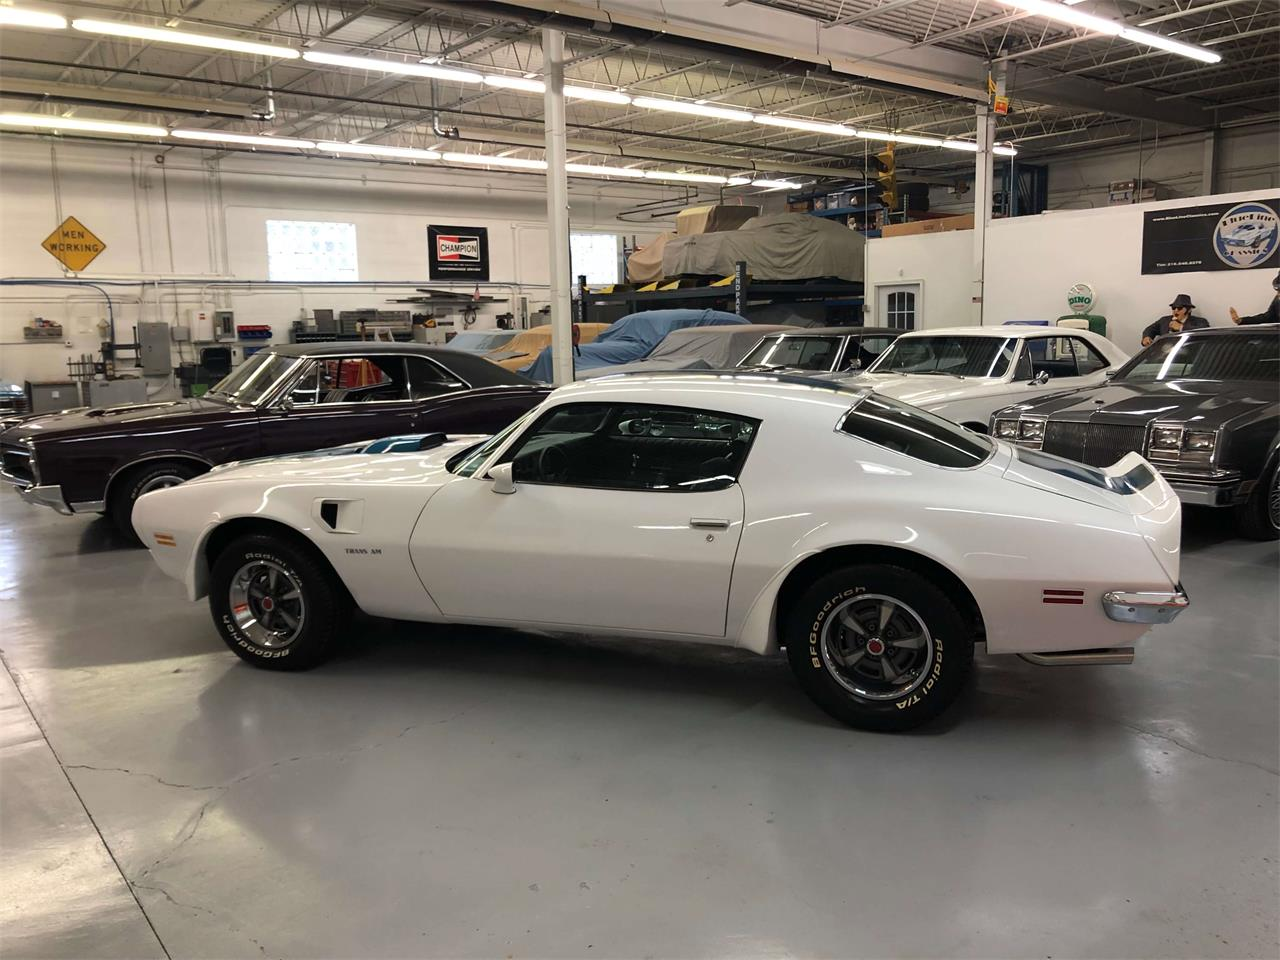 1970 Pontiac Firebird Trans Am for sale in North Royalton, OH – photo 19